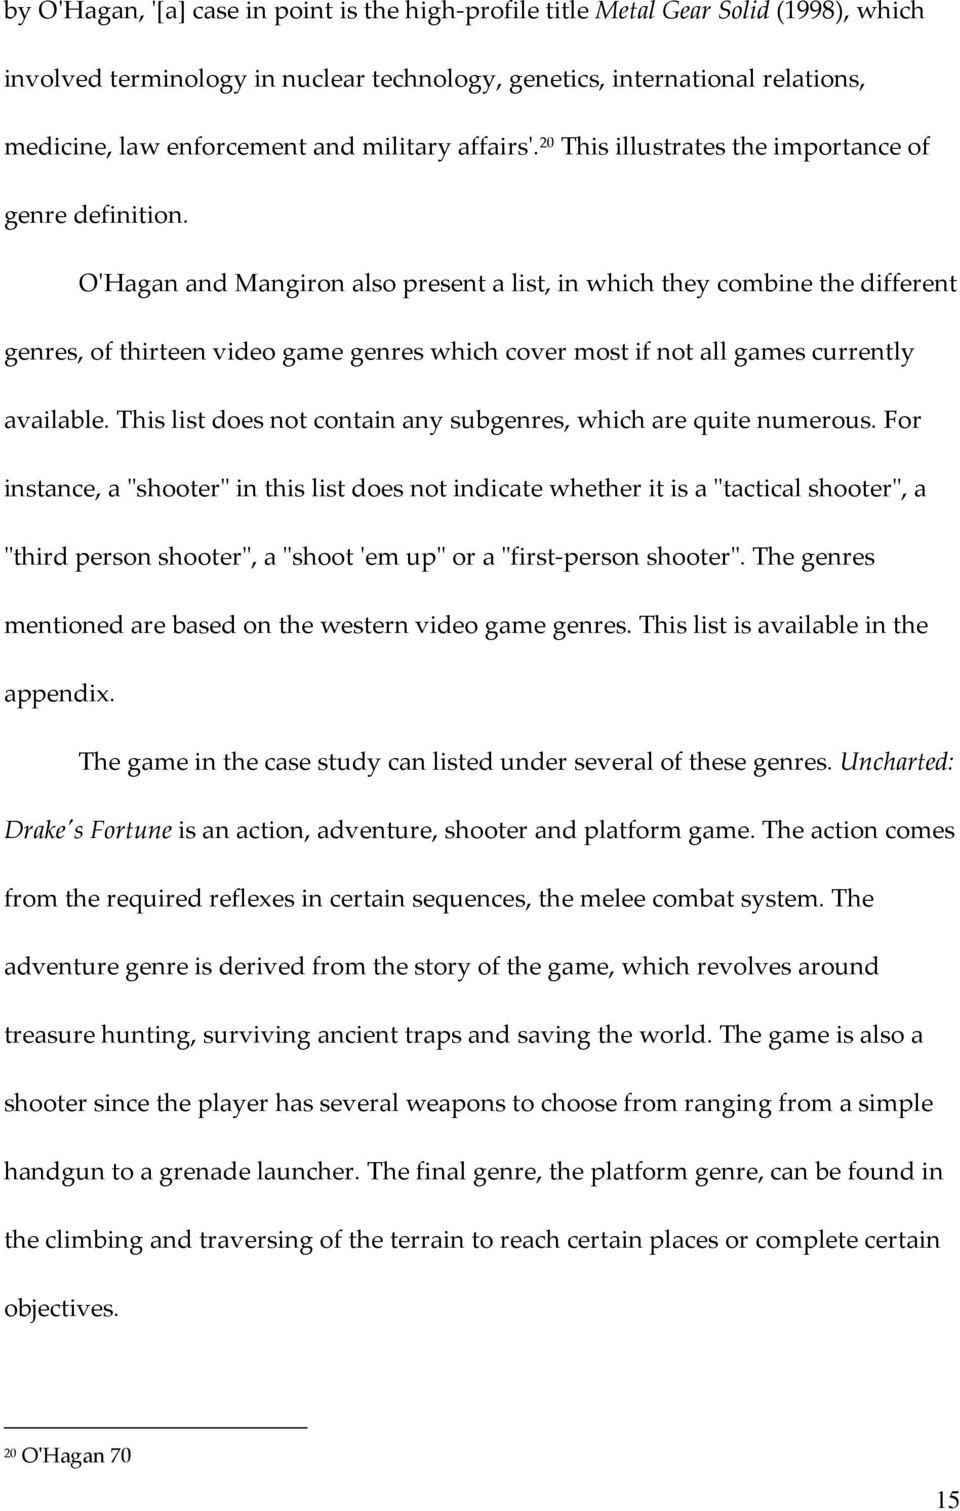 O'Hagan and Mangiron also present a list, in which they combine the different genres, of thirteen video game genres which cover most if not all games currently available.